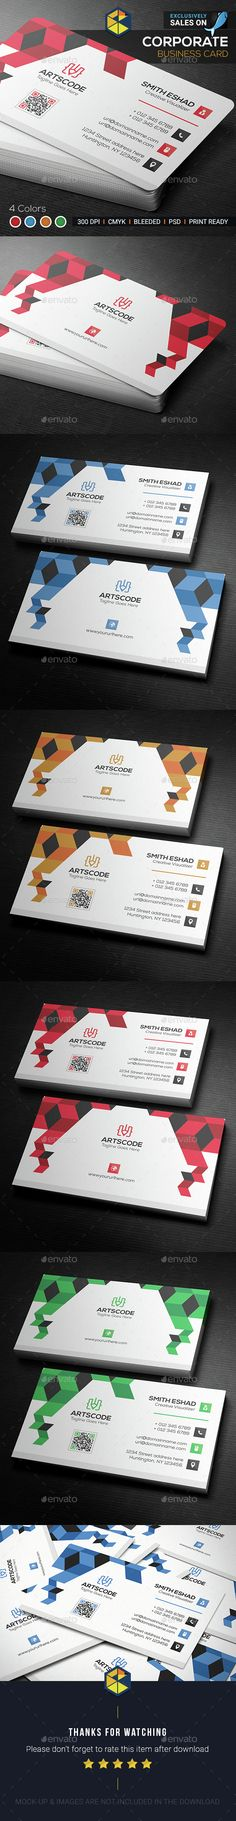 3D Boxed Business Card